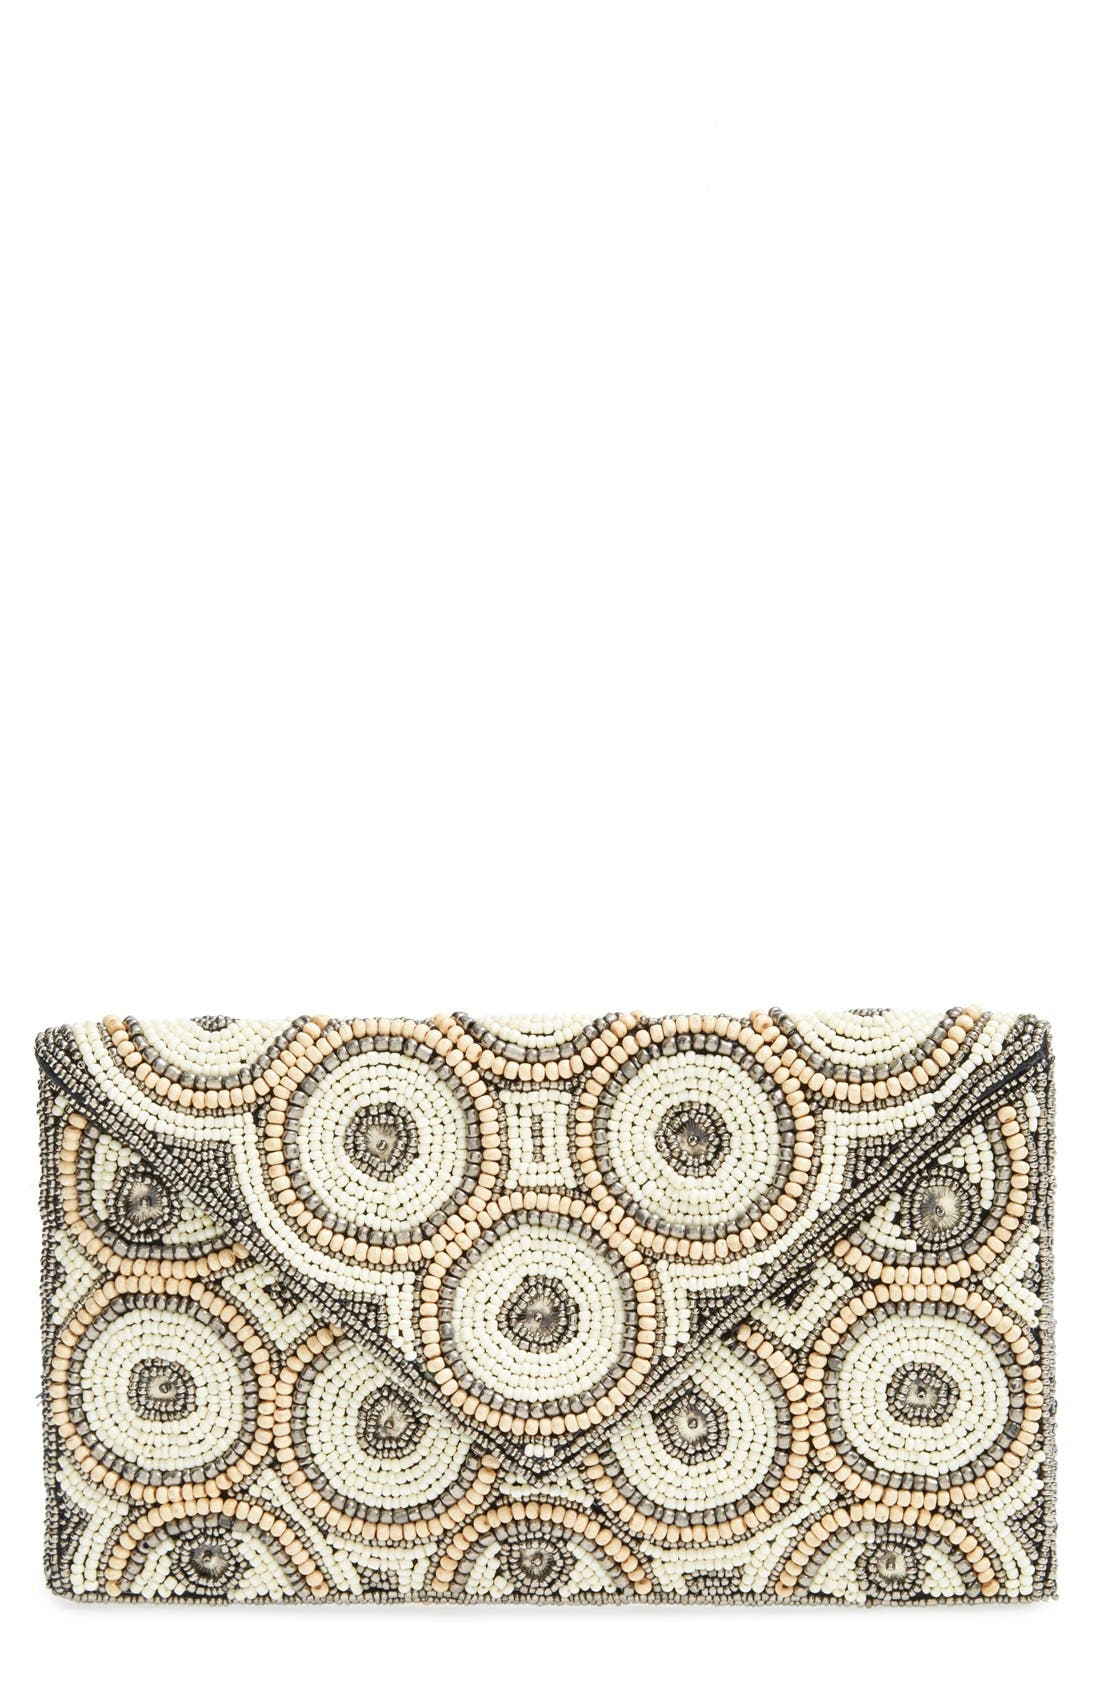 Alternate Image 1 Selected - Natasha Couture Beaded Clutch